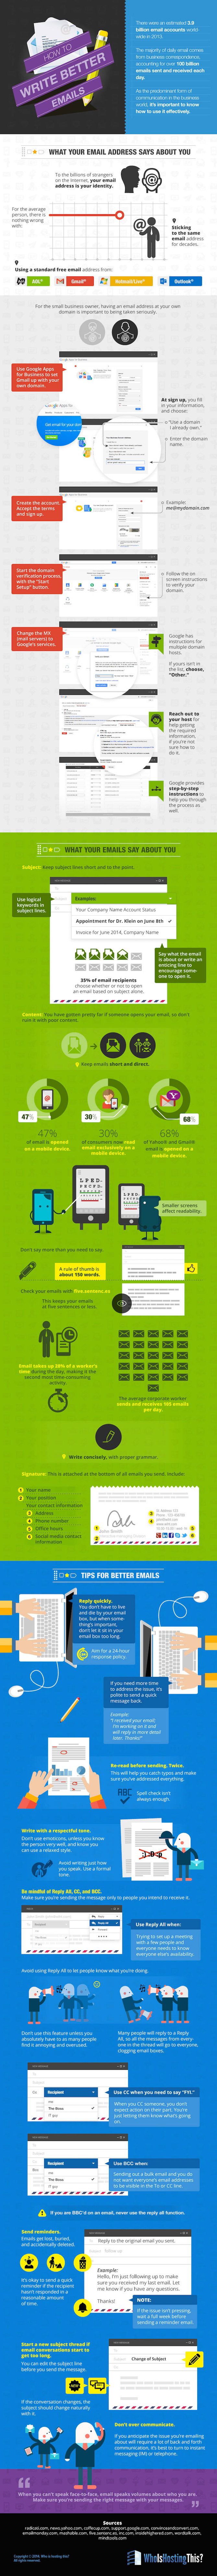 Write Better Emails Infographic